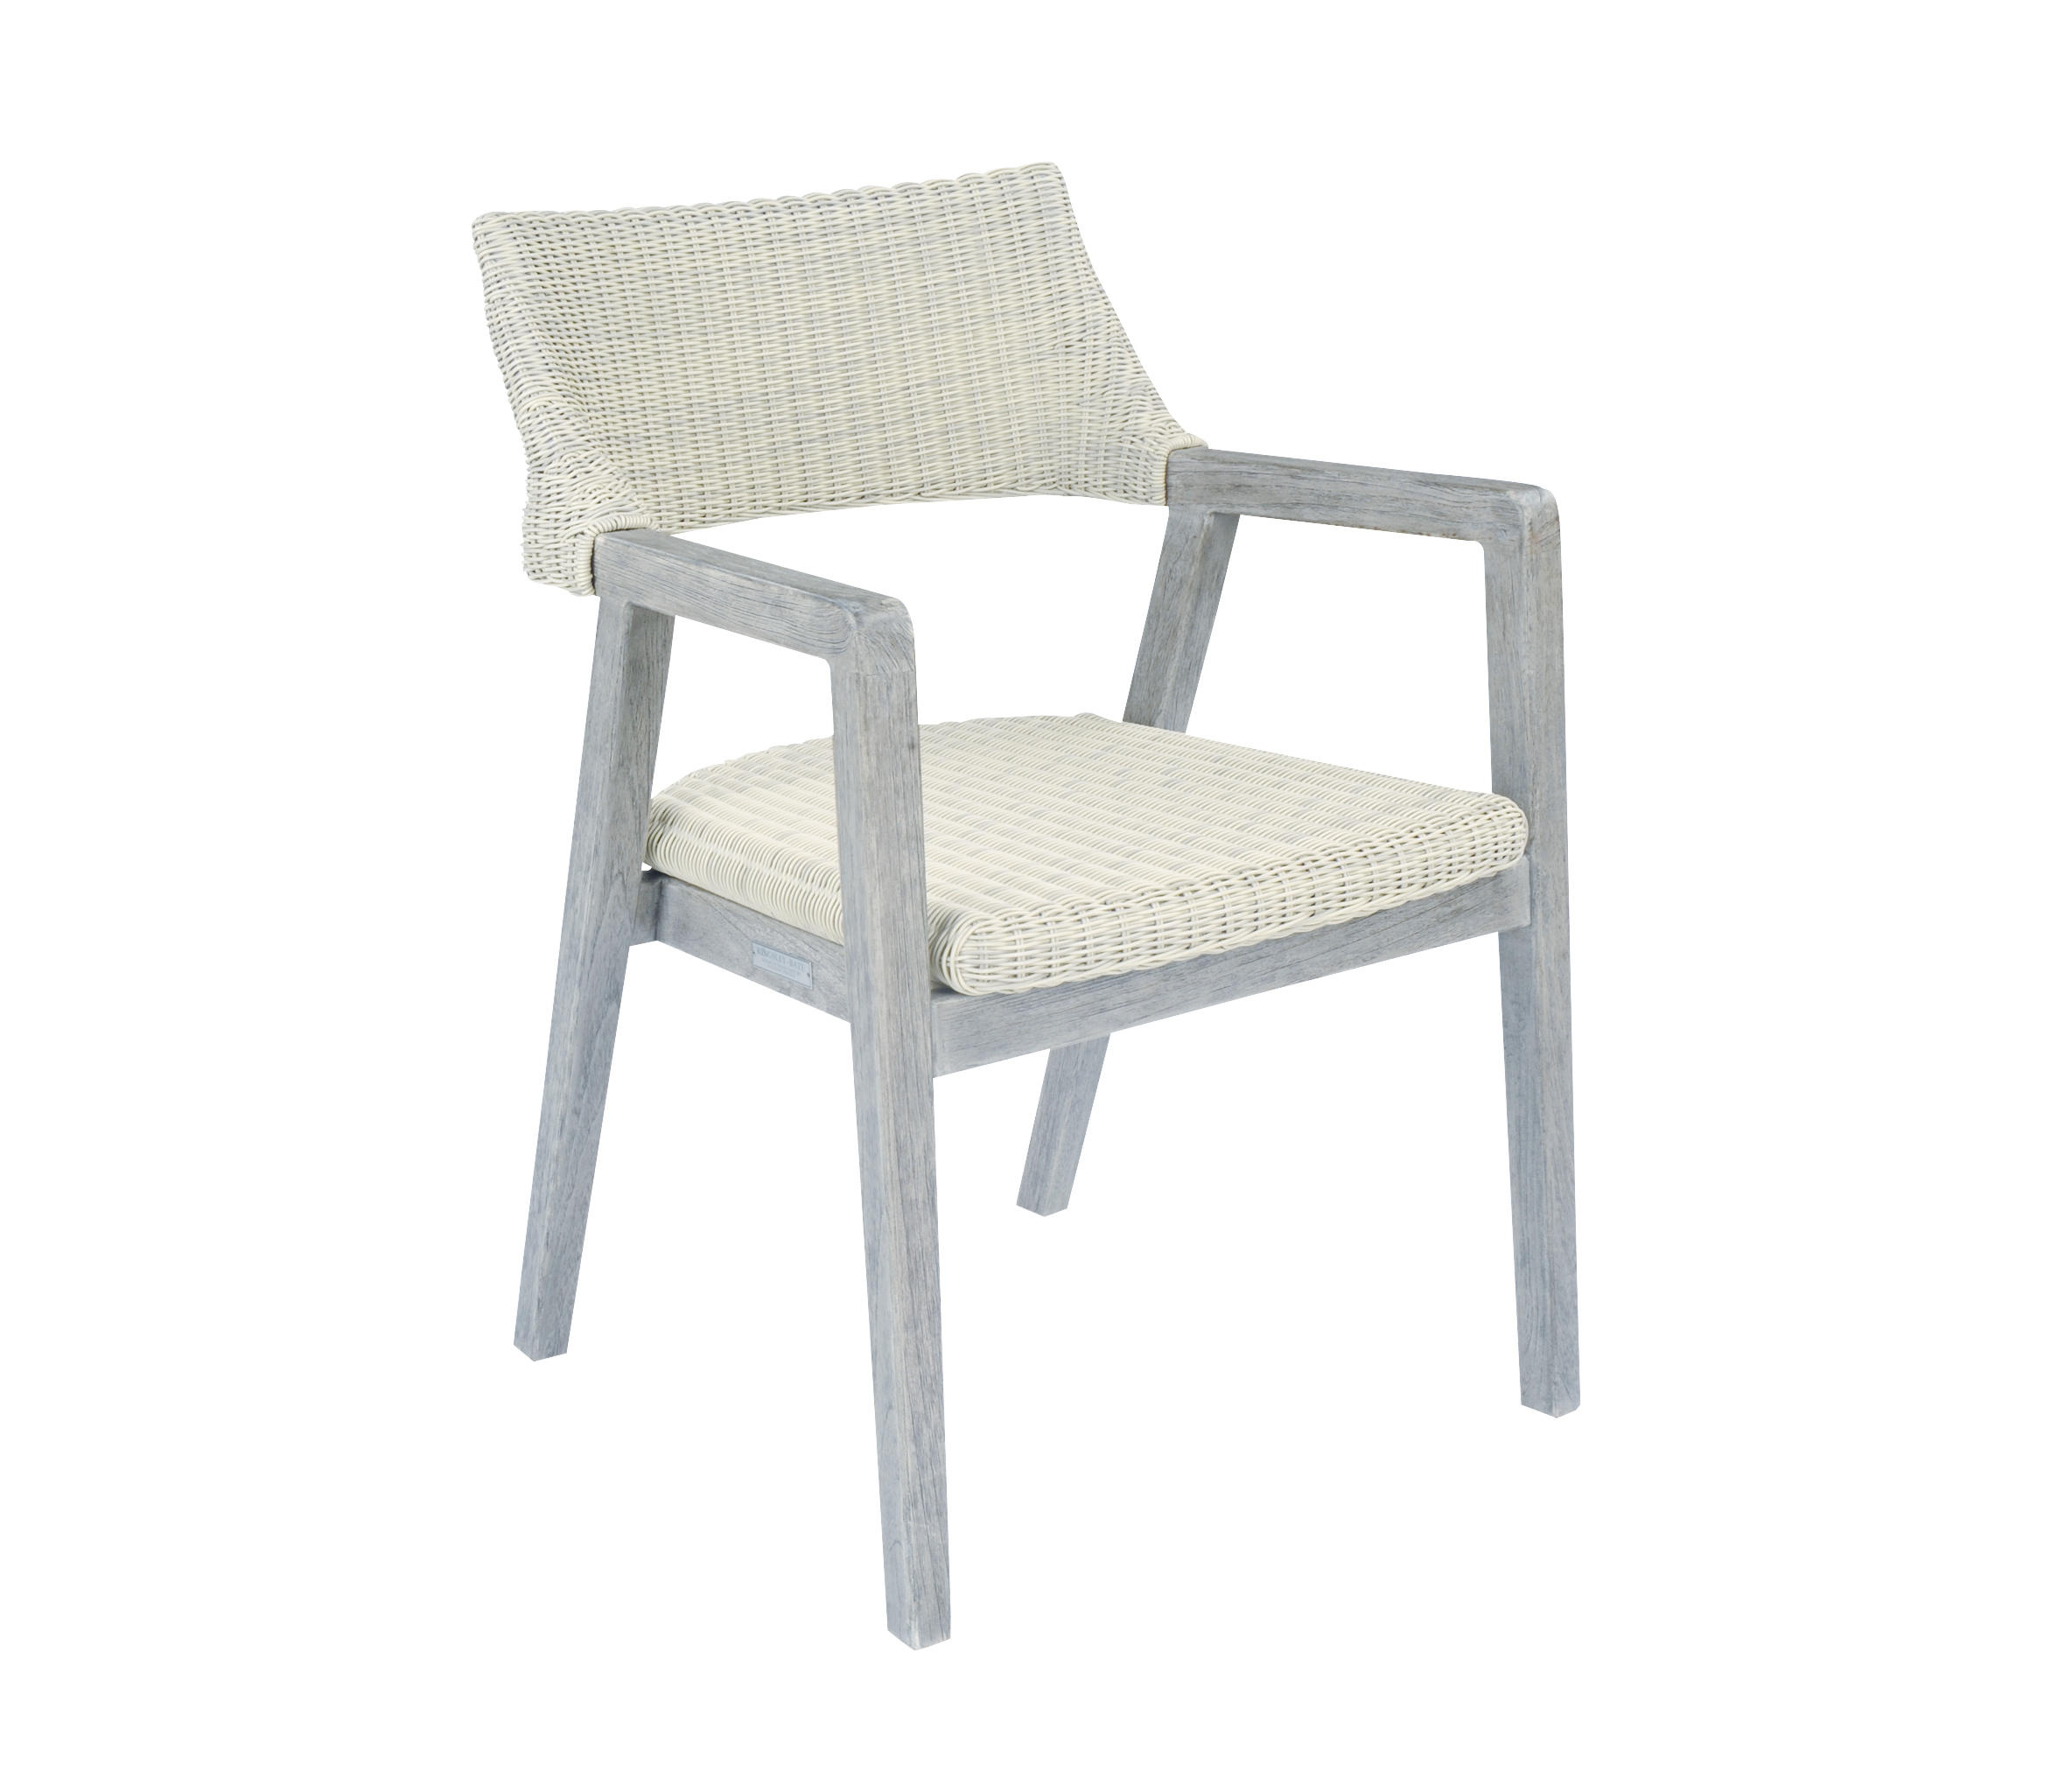 Spencer Dining Armchair By Kingsley Bate | Chairs ...